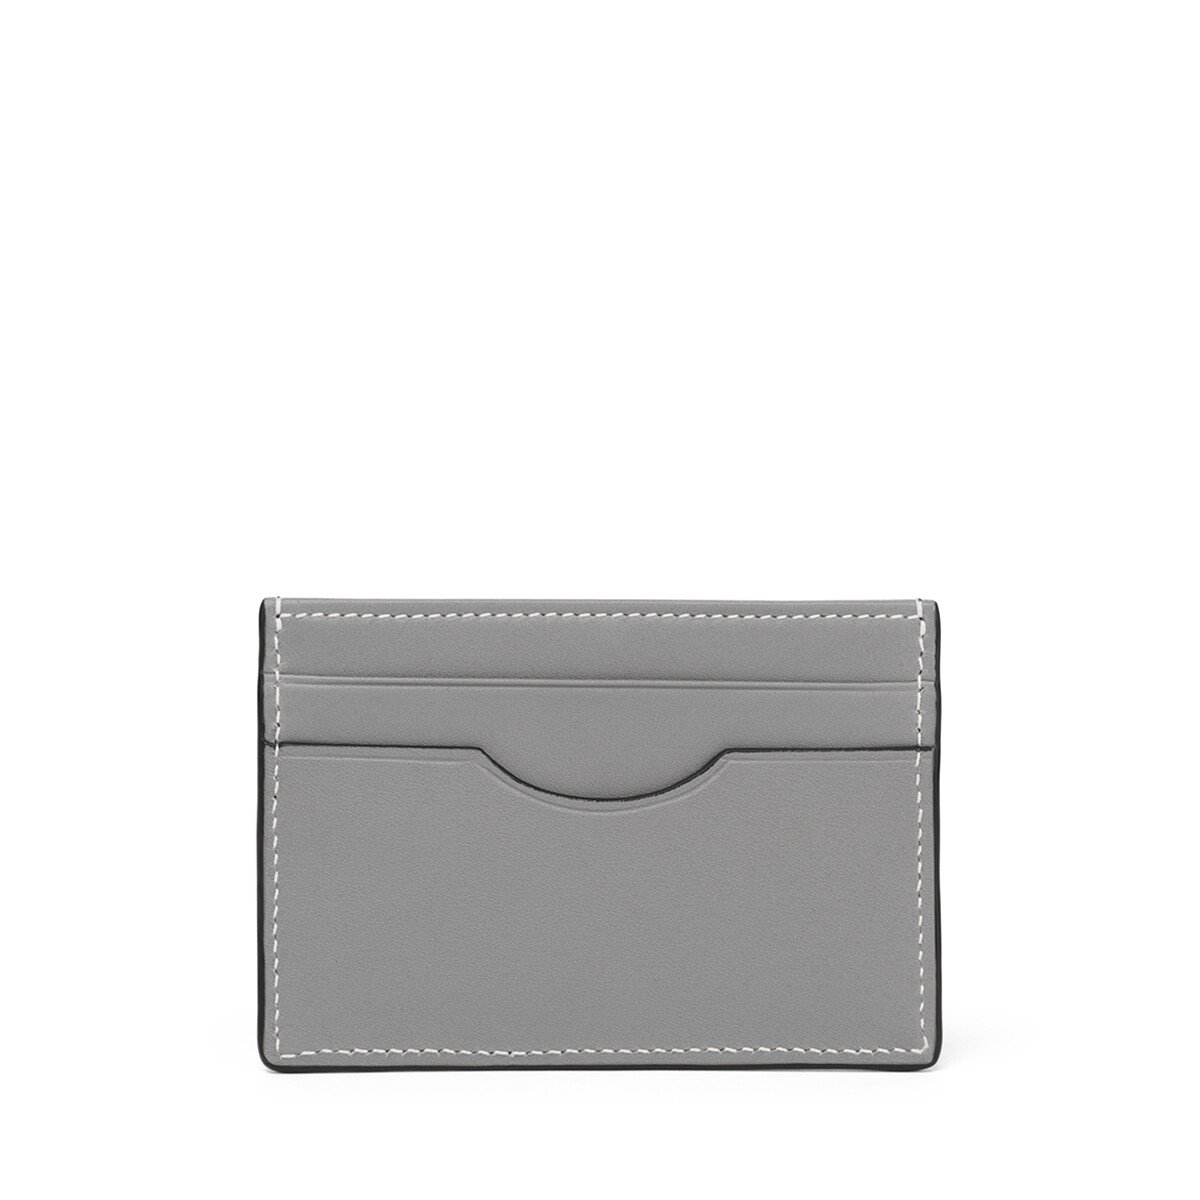 LOEWE Plain Card Holder Ginger/Smoke Grey front